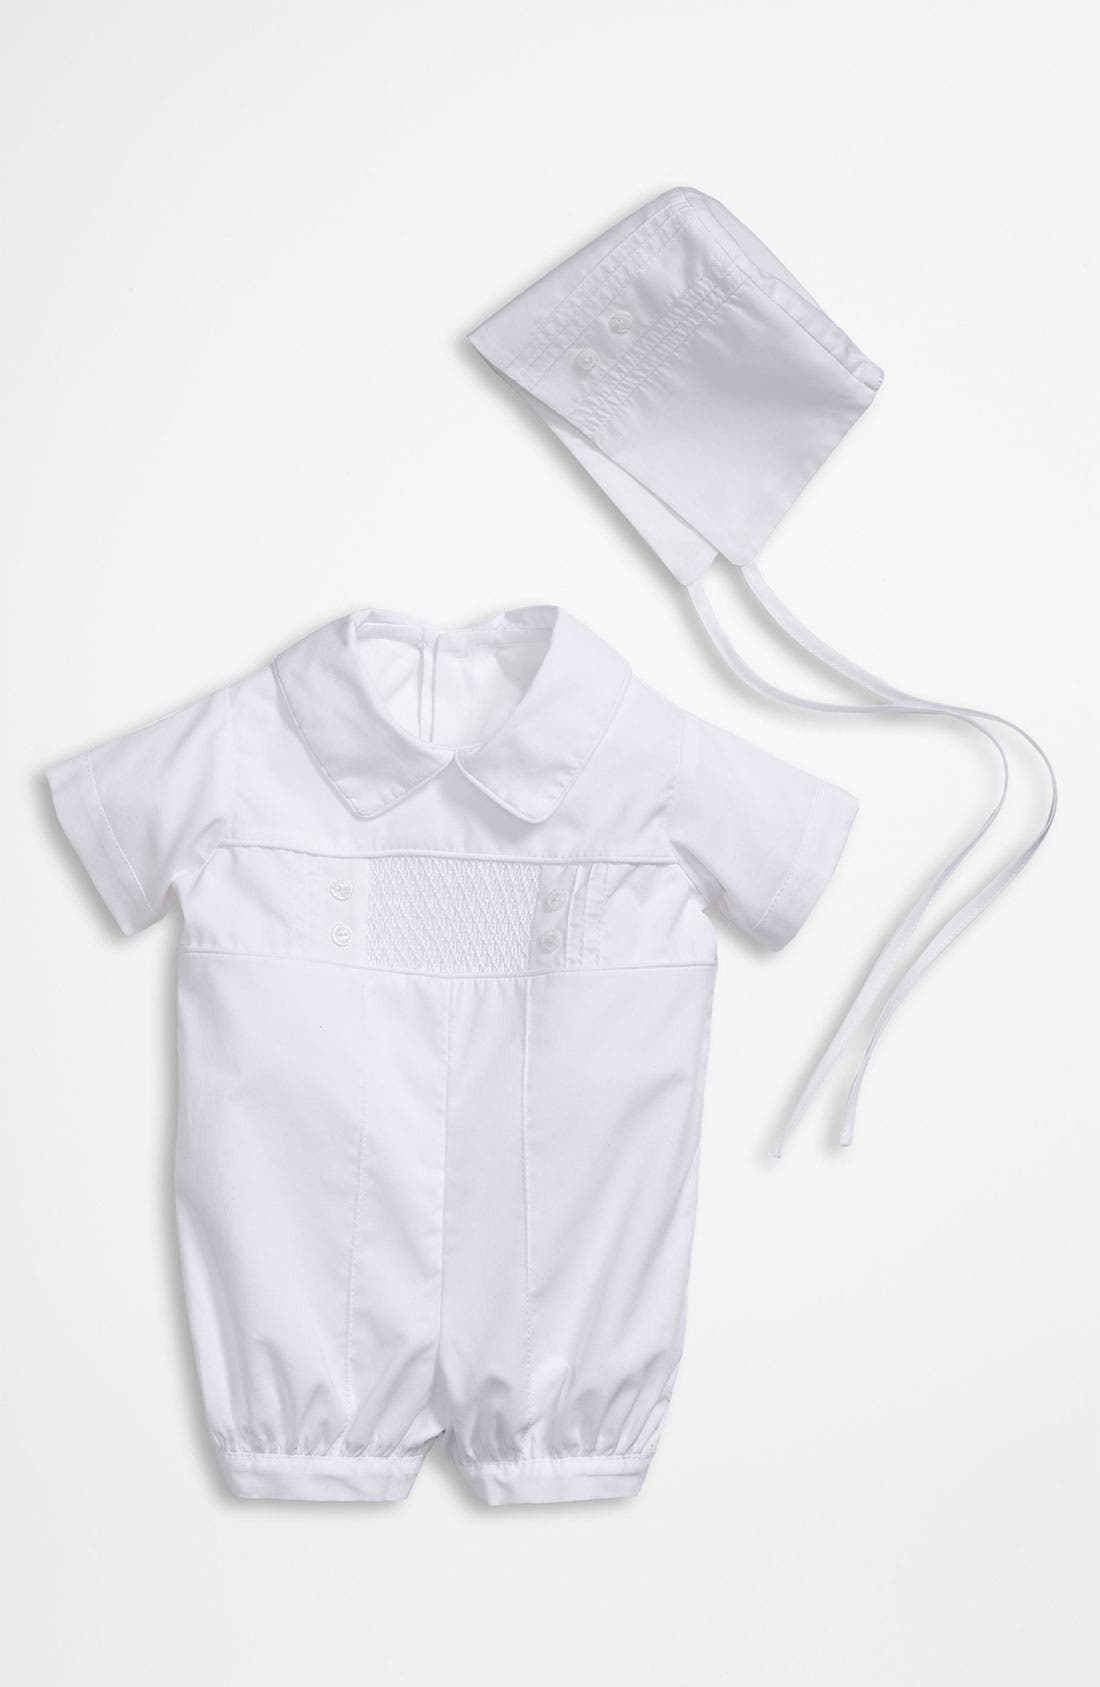 Little Things Mean a Lot Romper & Hat Set (Baby)